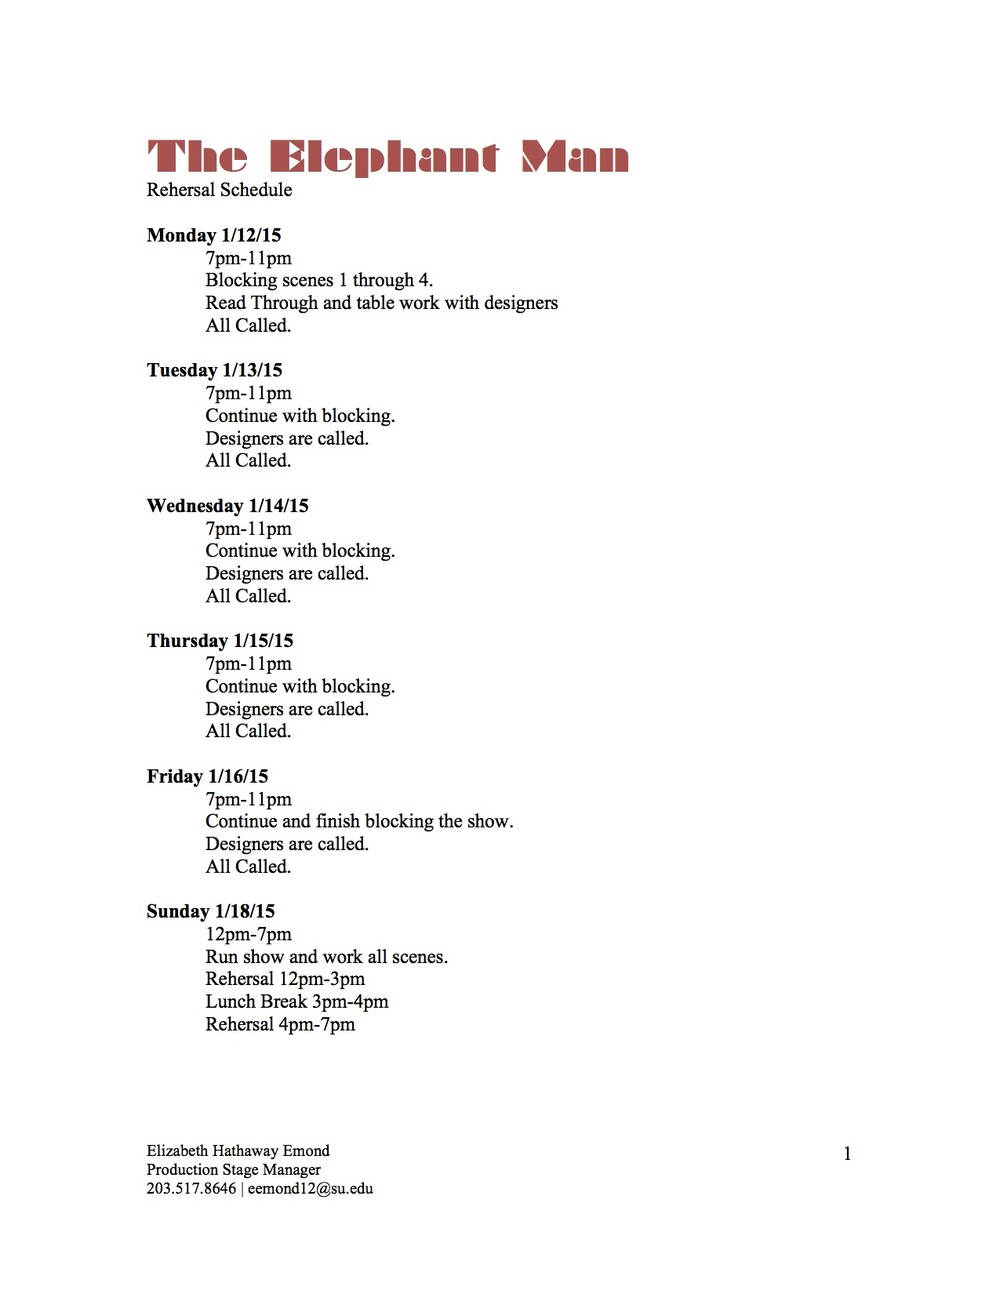 The Elephant Man Rehersal Schedule Website Edit .jpg